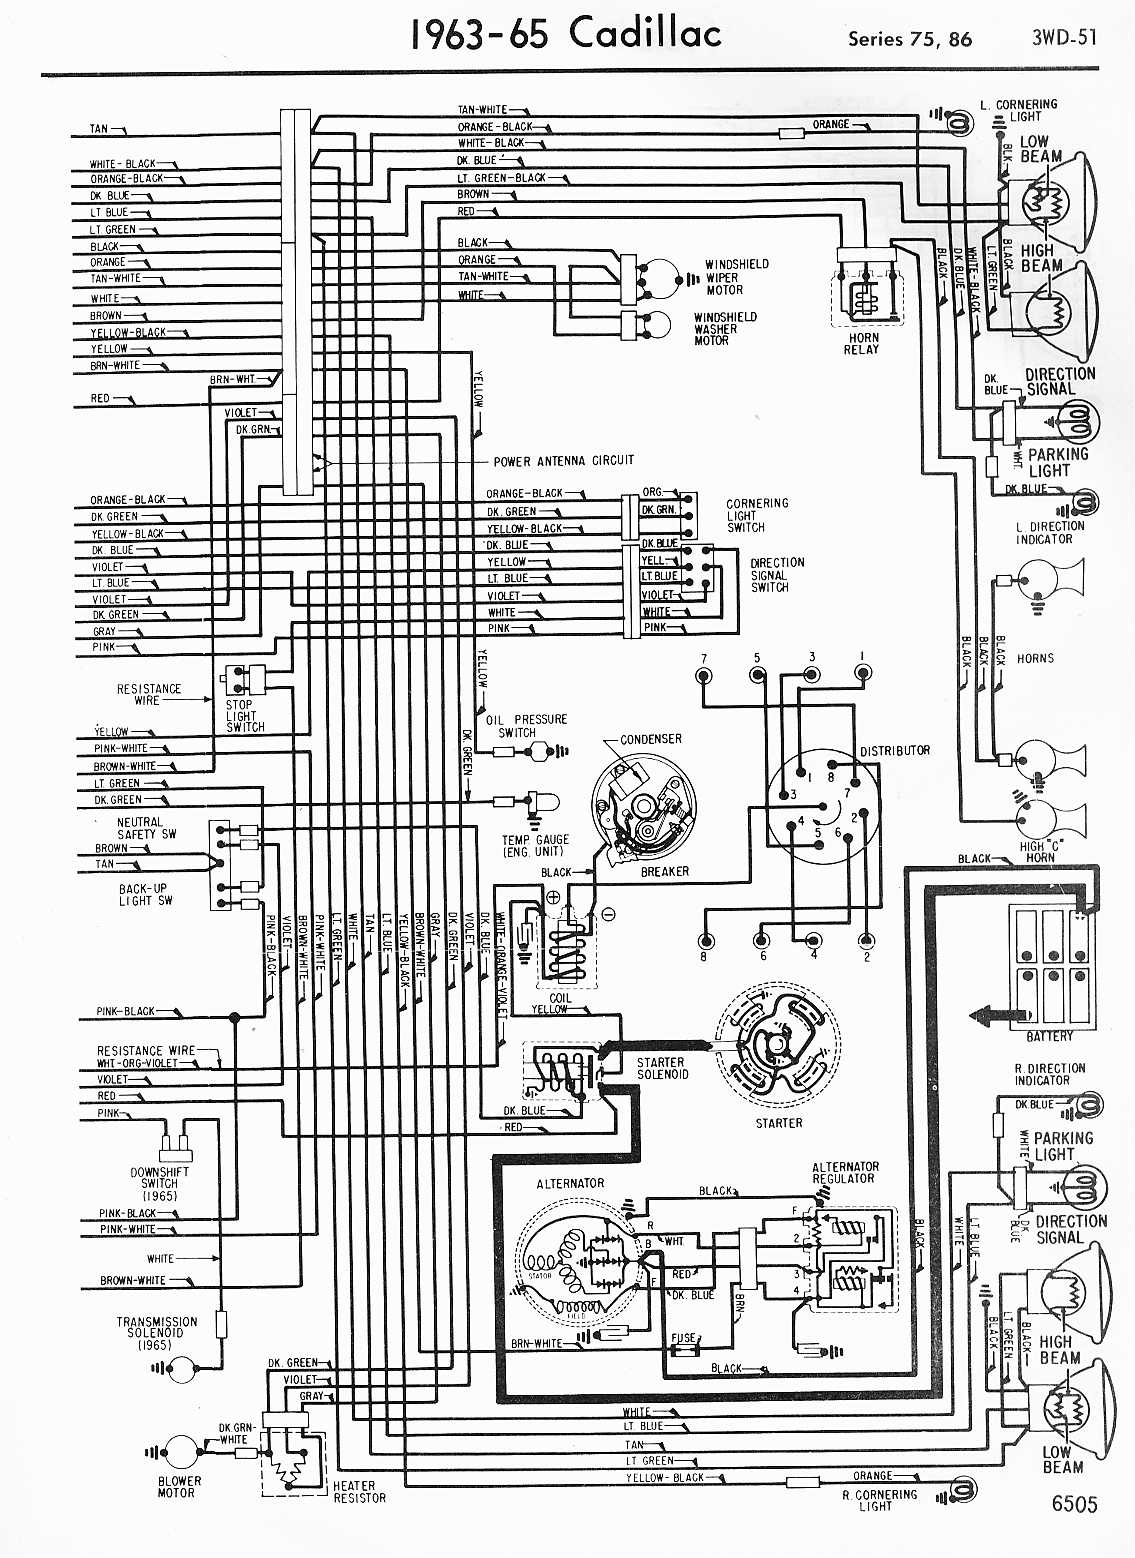 2000 Cadillac Escalade Headlamp Switch Wire Diagram Wiring Library Window Schematic 1964 Series 75 Right